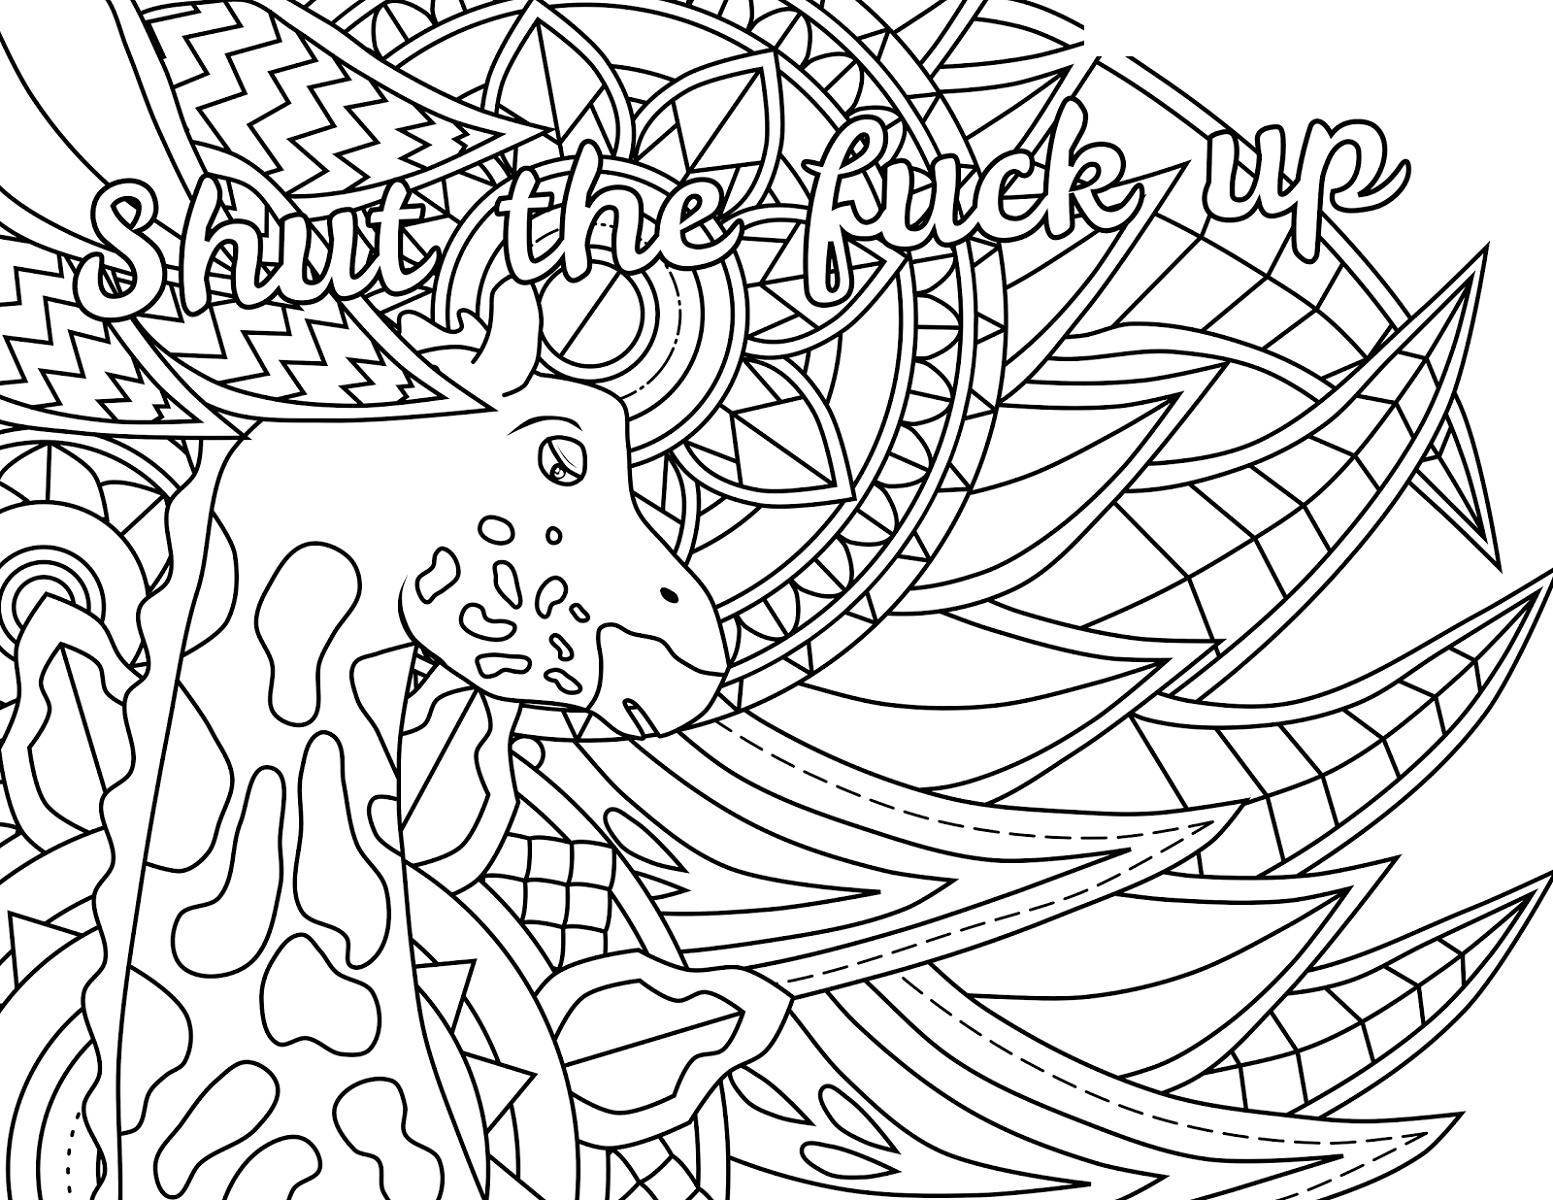 Curse Word Coloring Book Printable